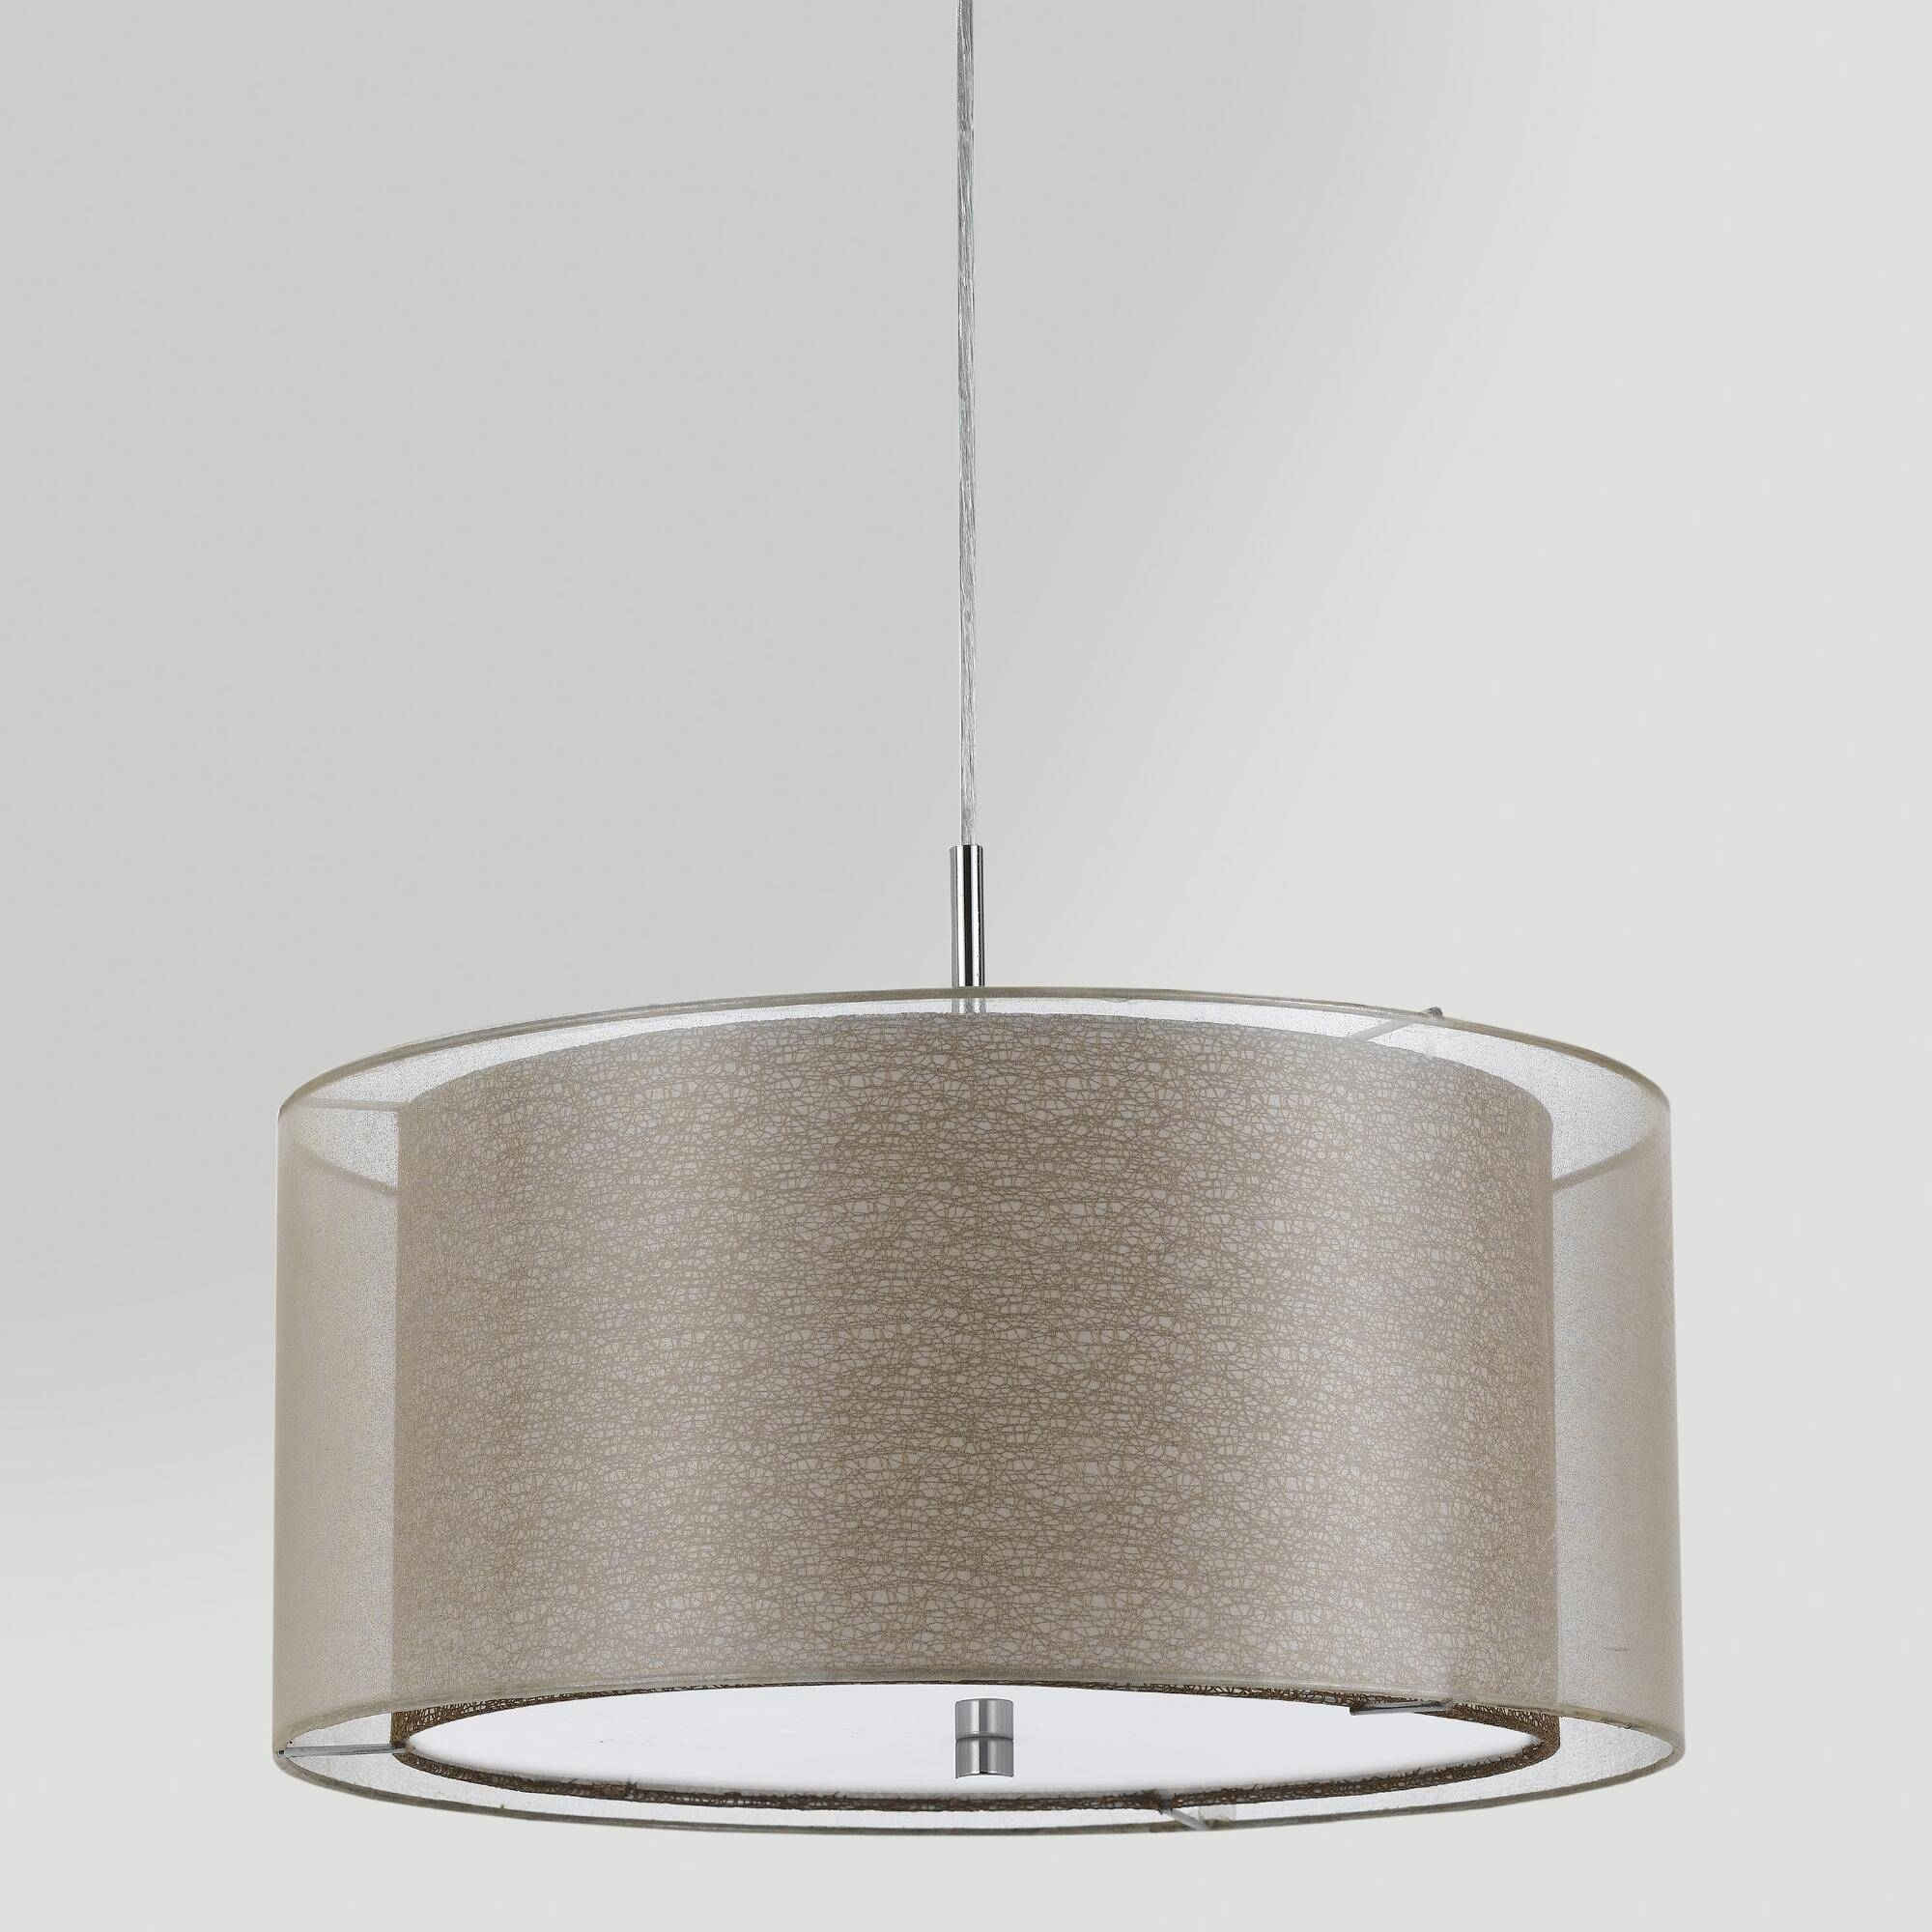 Commercial Drum Pendant Lighting - Drum Pendant Lighting For for Commercial Pendant Light Fixtures (Image 2 of 15)